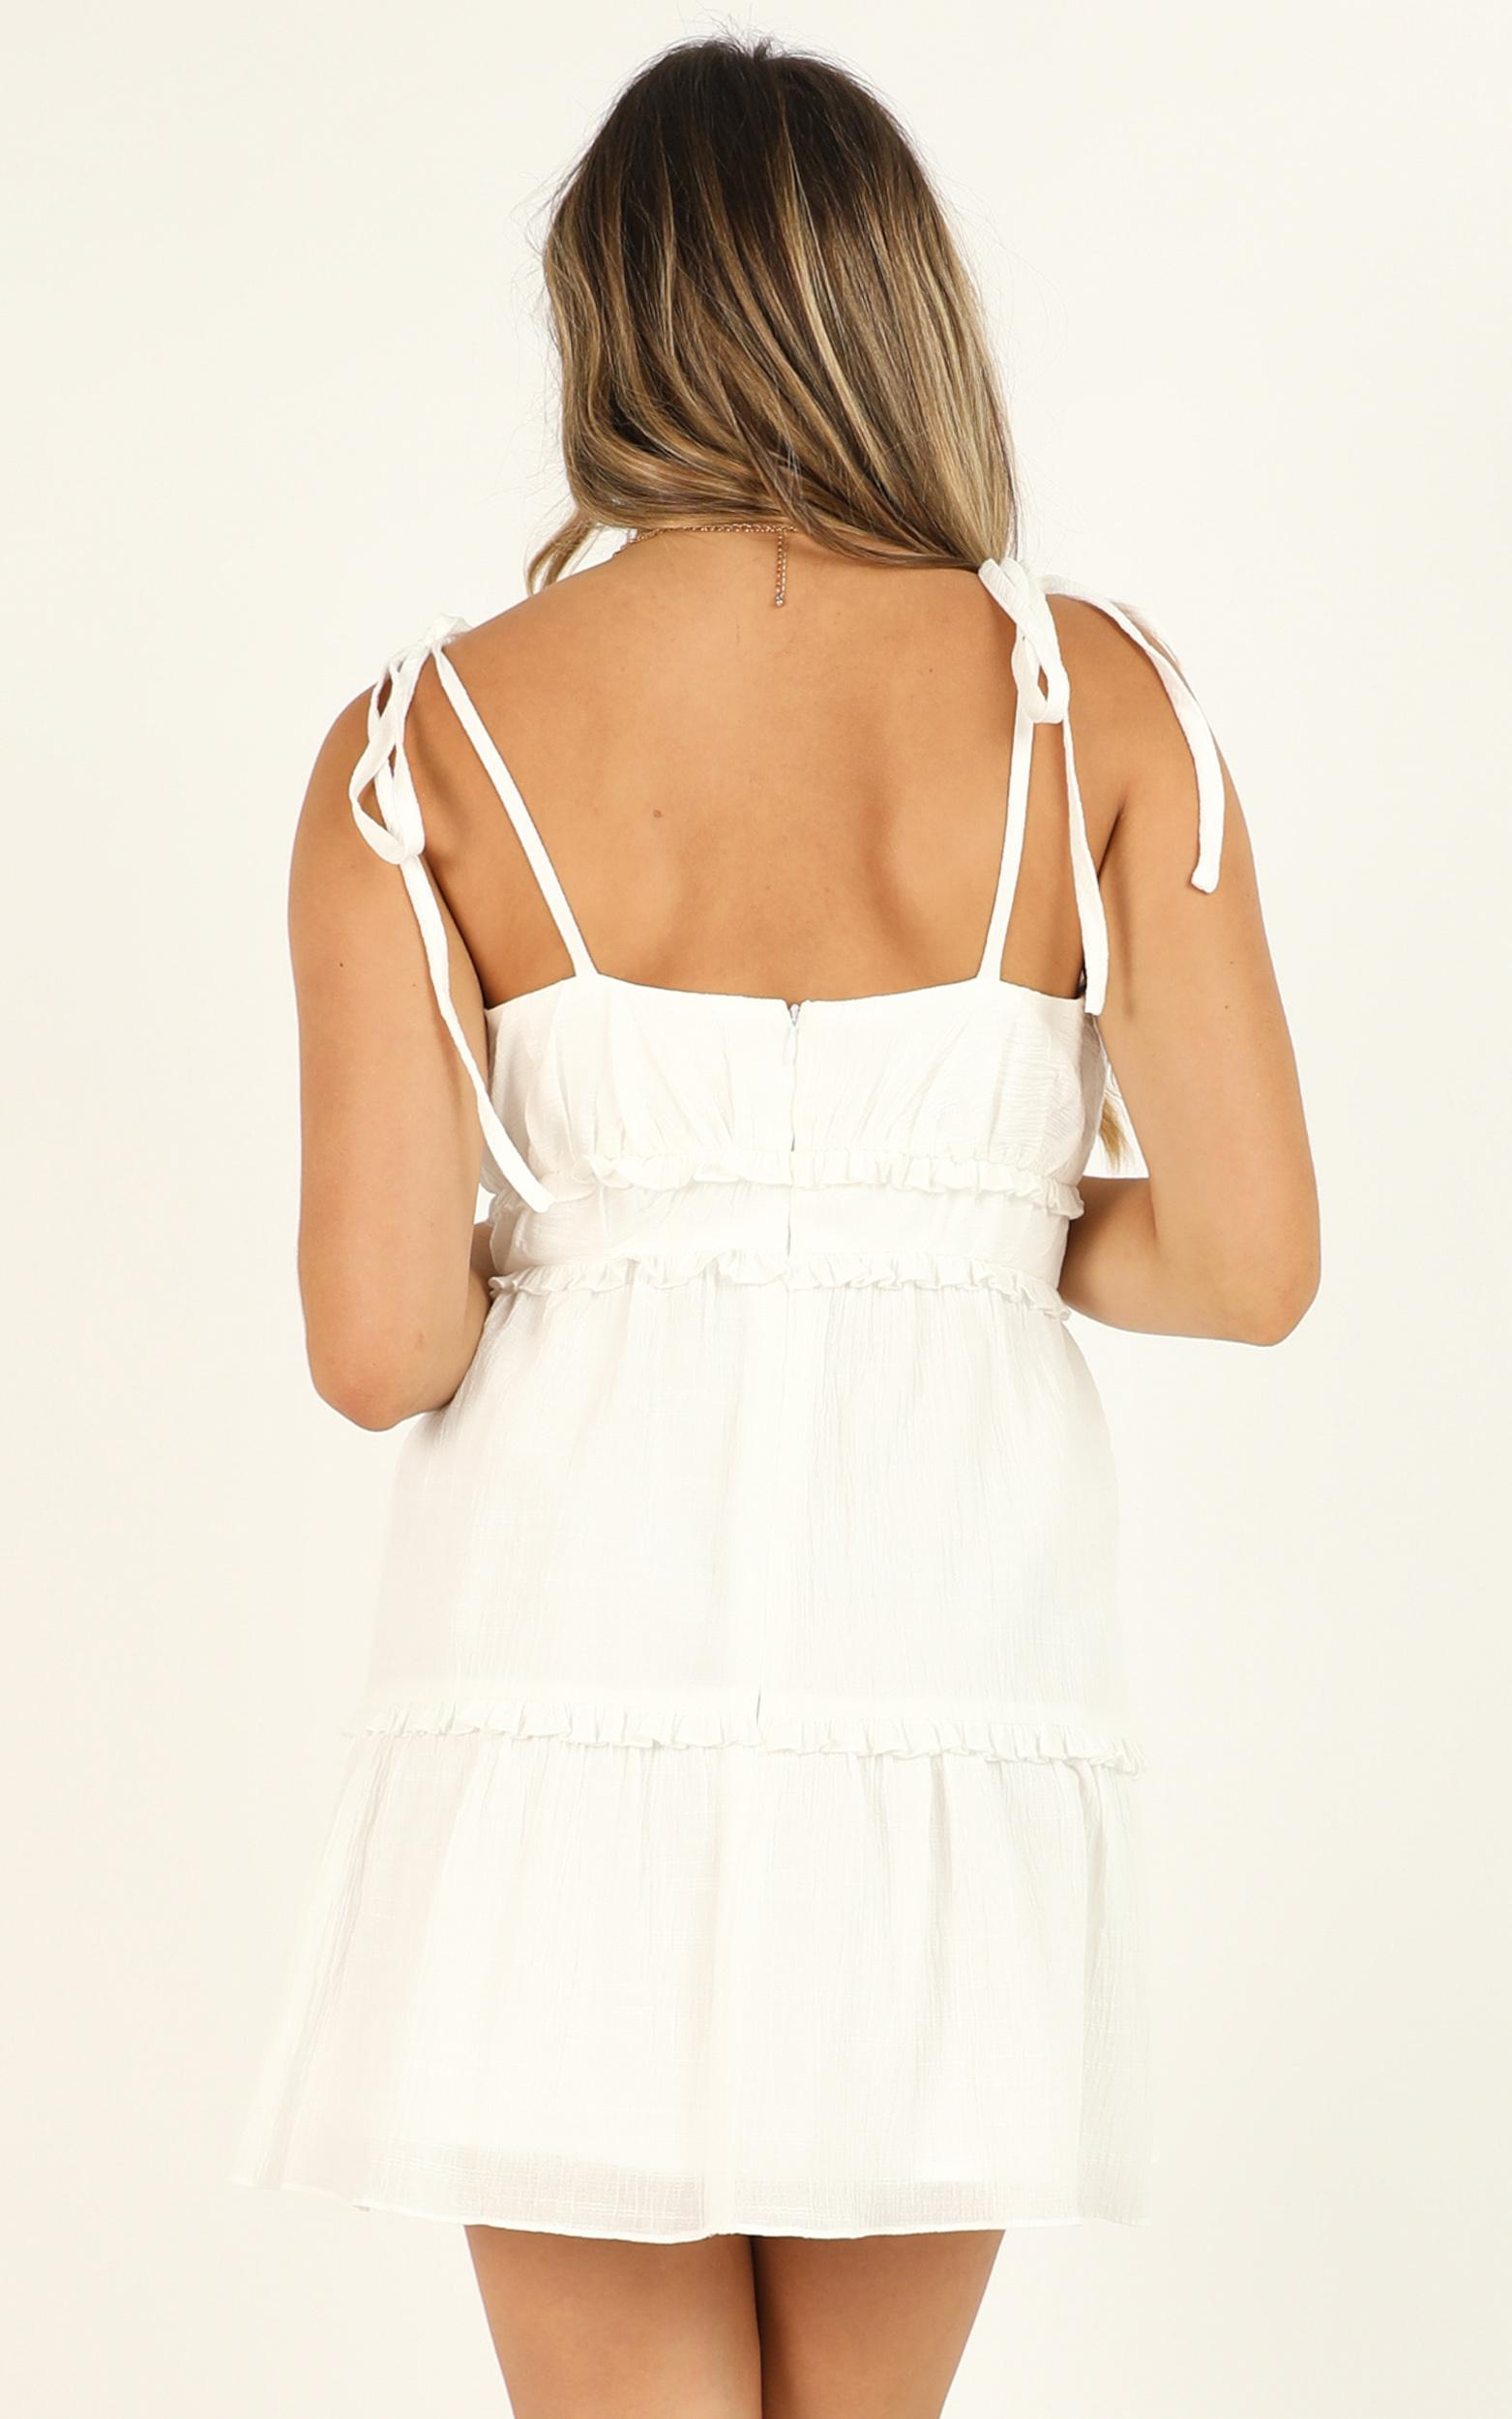 No Therapy Needed Dress in white - 16 (XXL), White, hi-res image number null